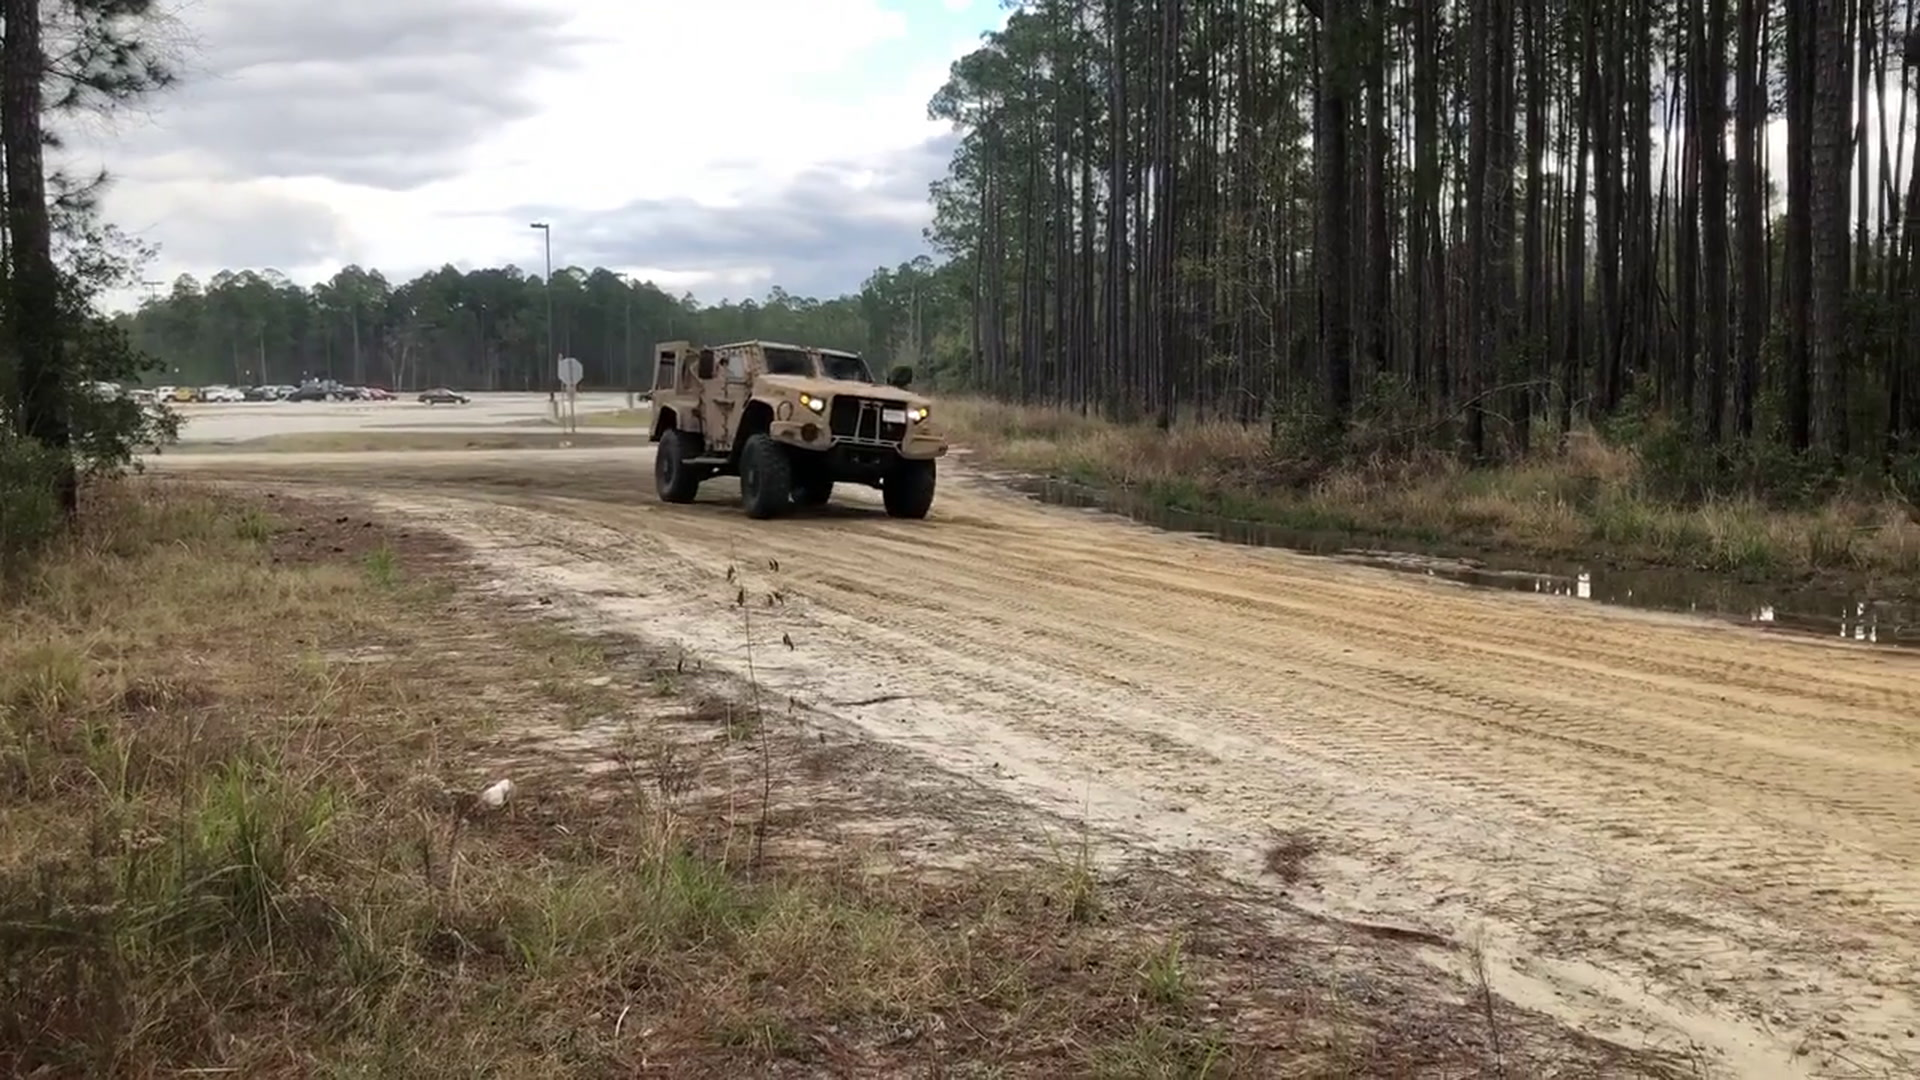 Jltv Won T Replace Humvee After All Army Secretary Says